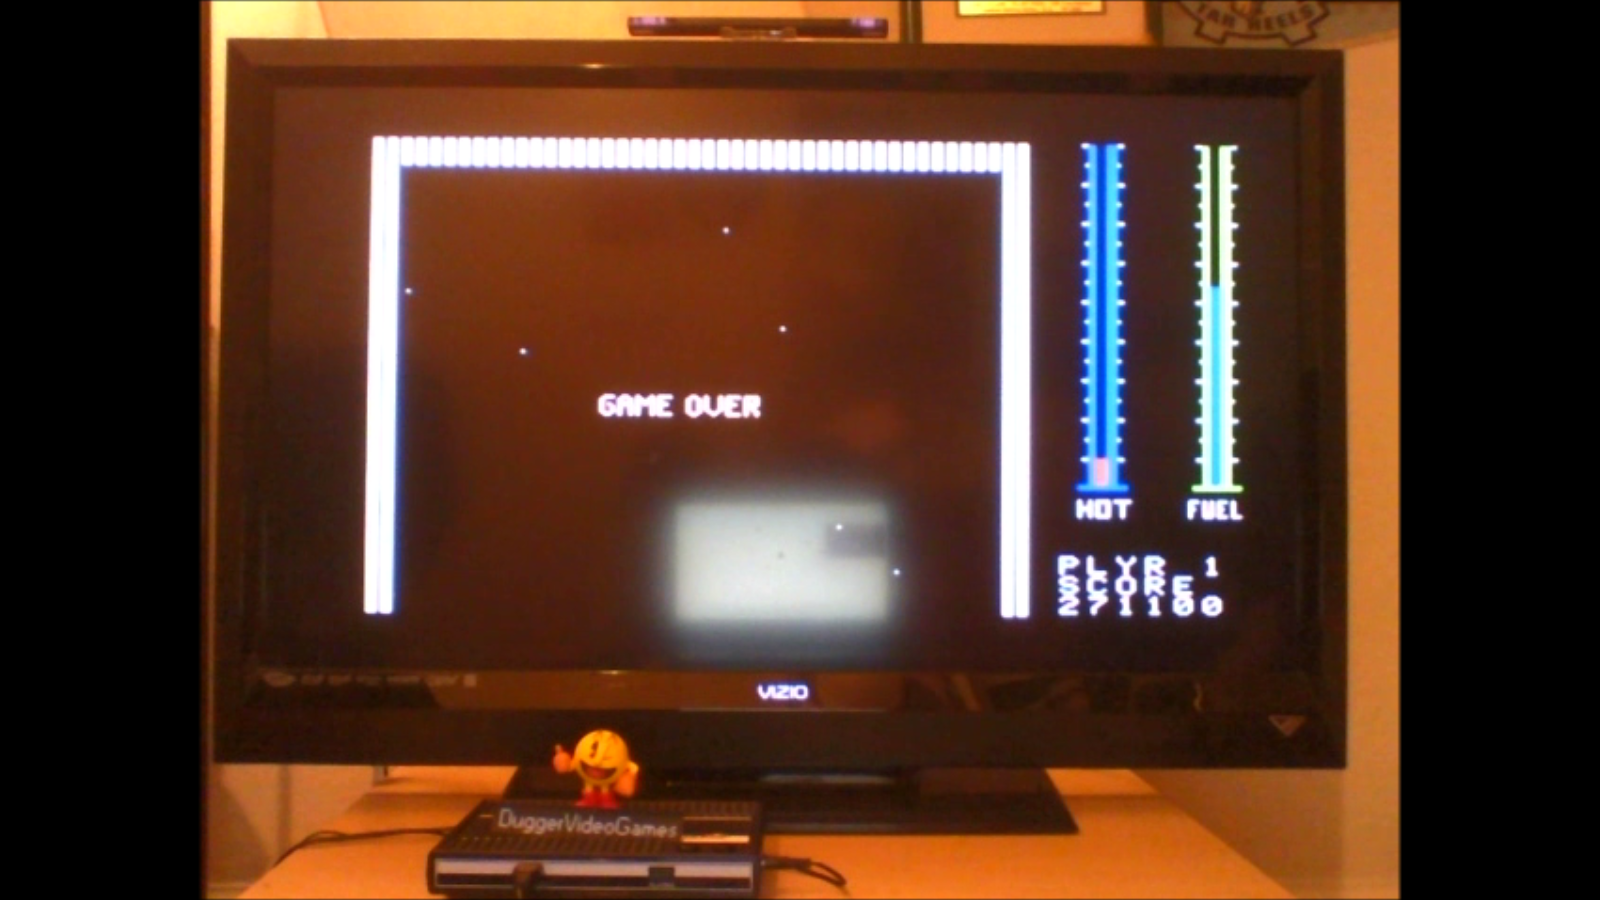 DuggerVideoGames: Threshold: Skill 1 (Colecovision Emulated) 271,100 points on 2016-07-10 03:30:47